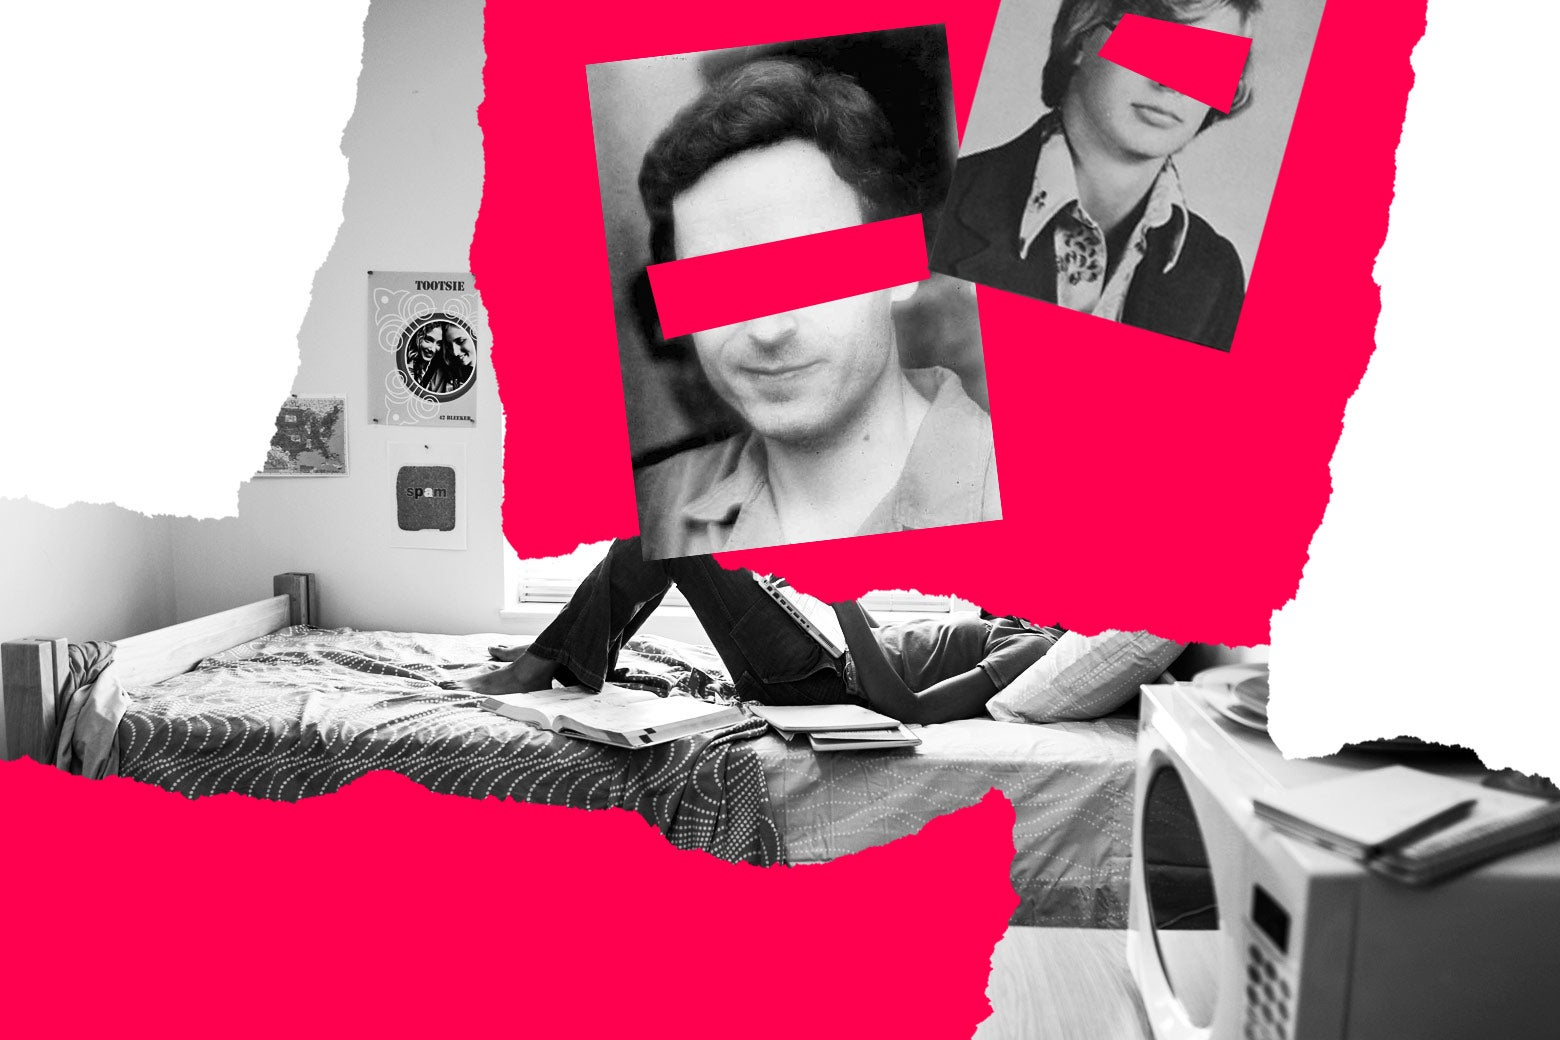 Photos of serial killers superimposed against a background depicting a woman lying in bed.